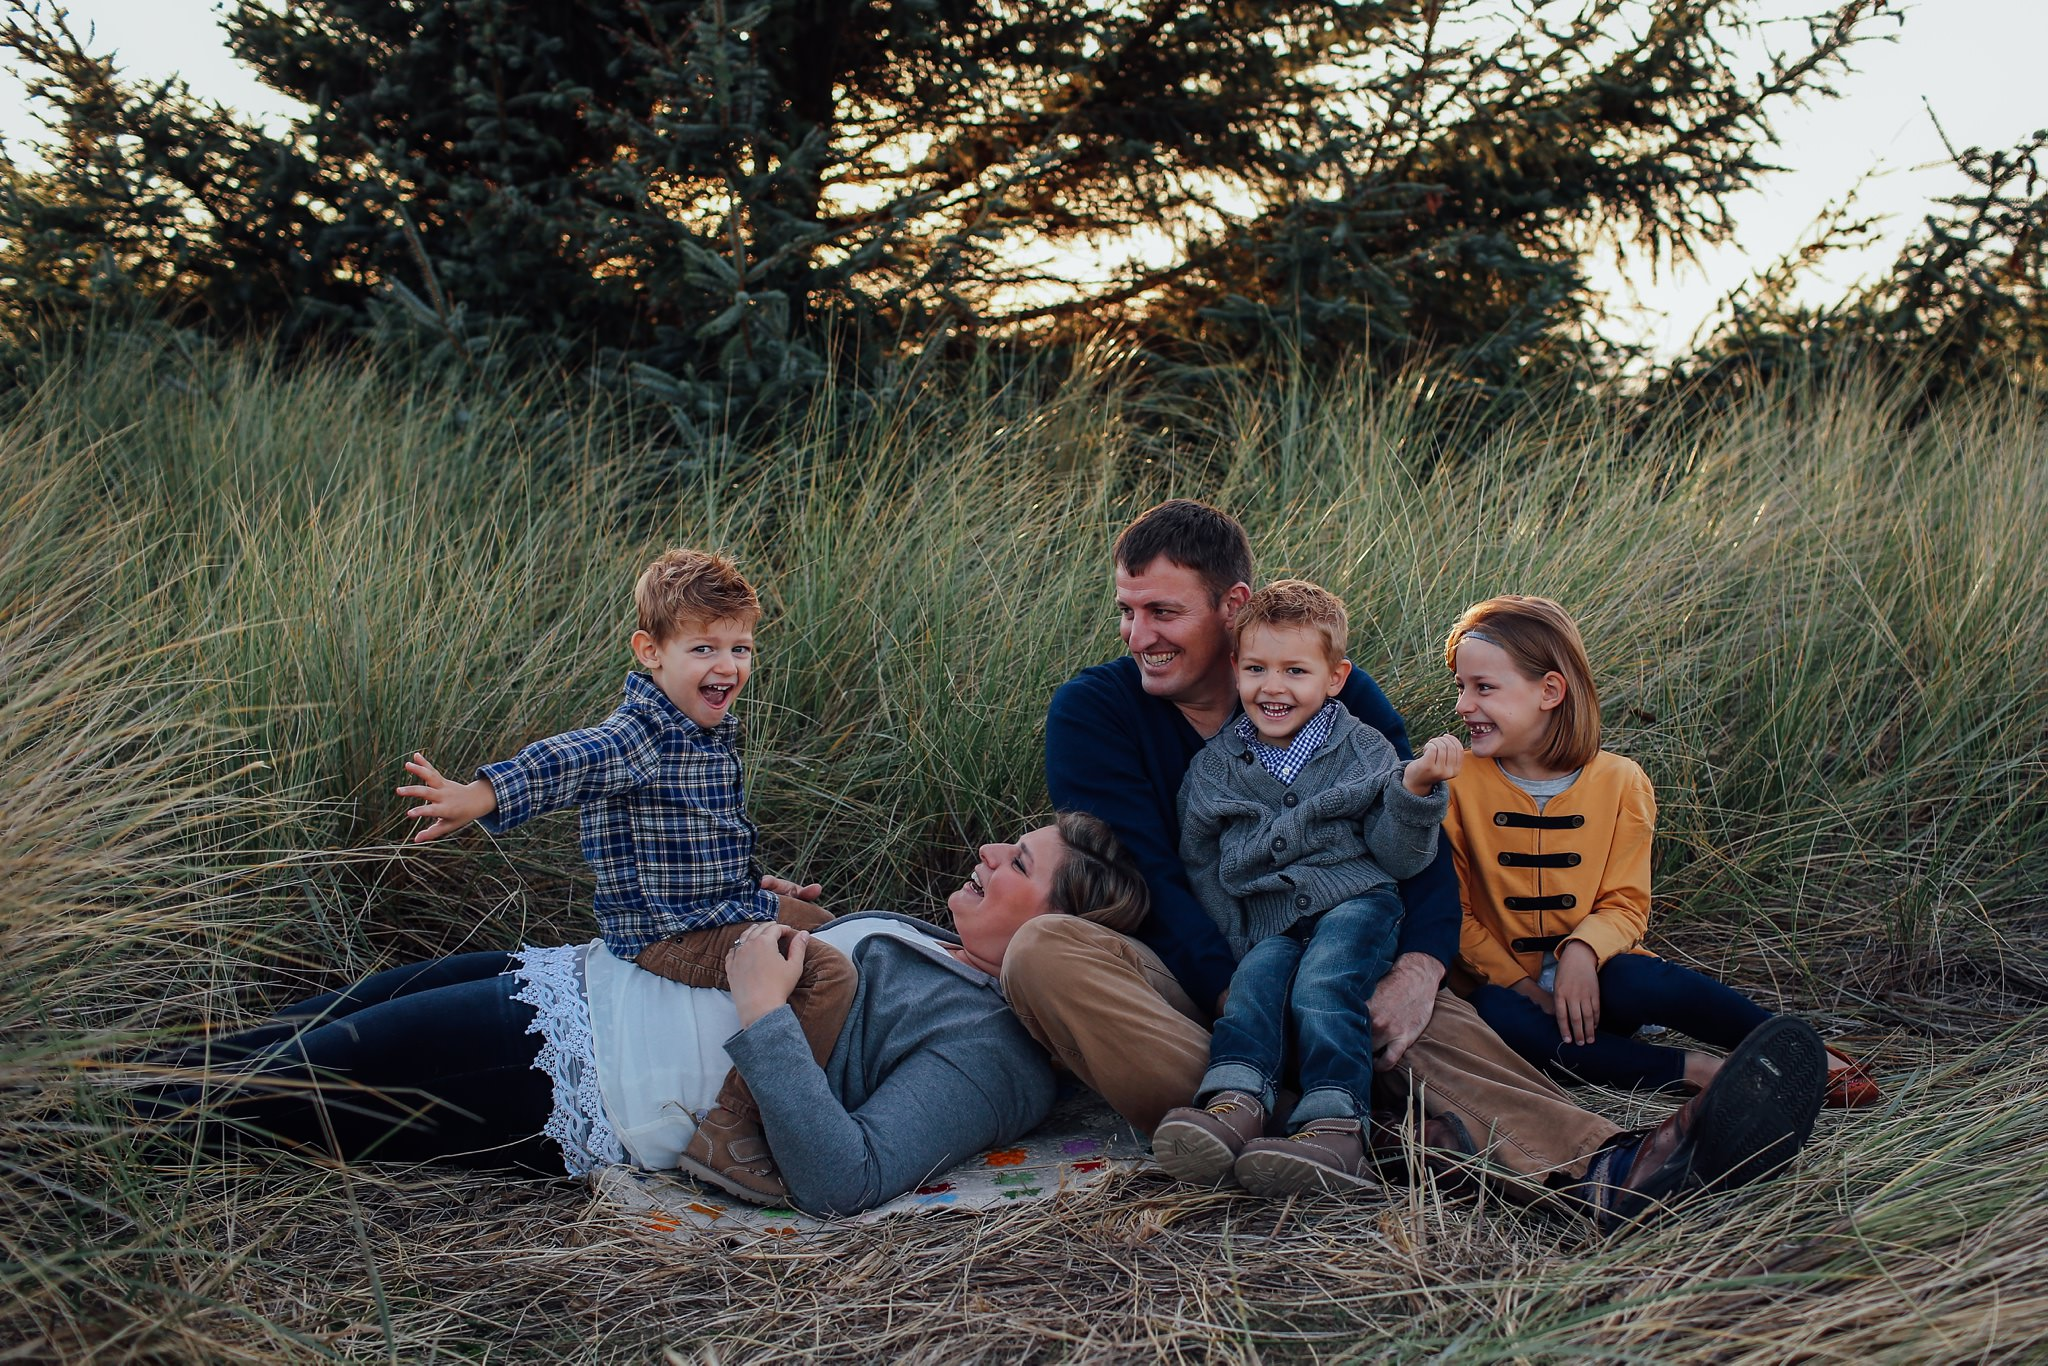 Whidbey-Island-Family-Photographer-Kara-Chappell-Photography_1181.jpg